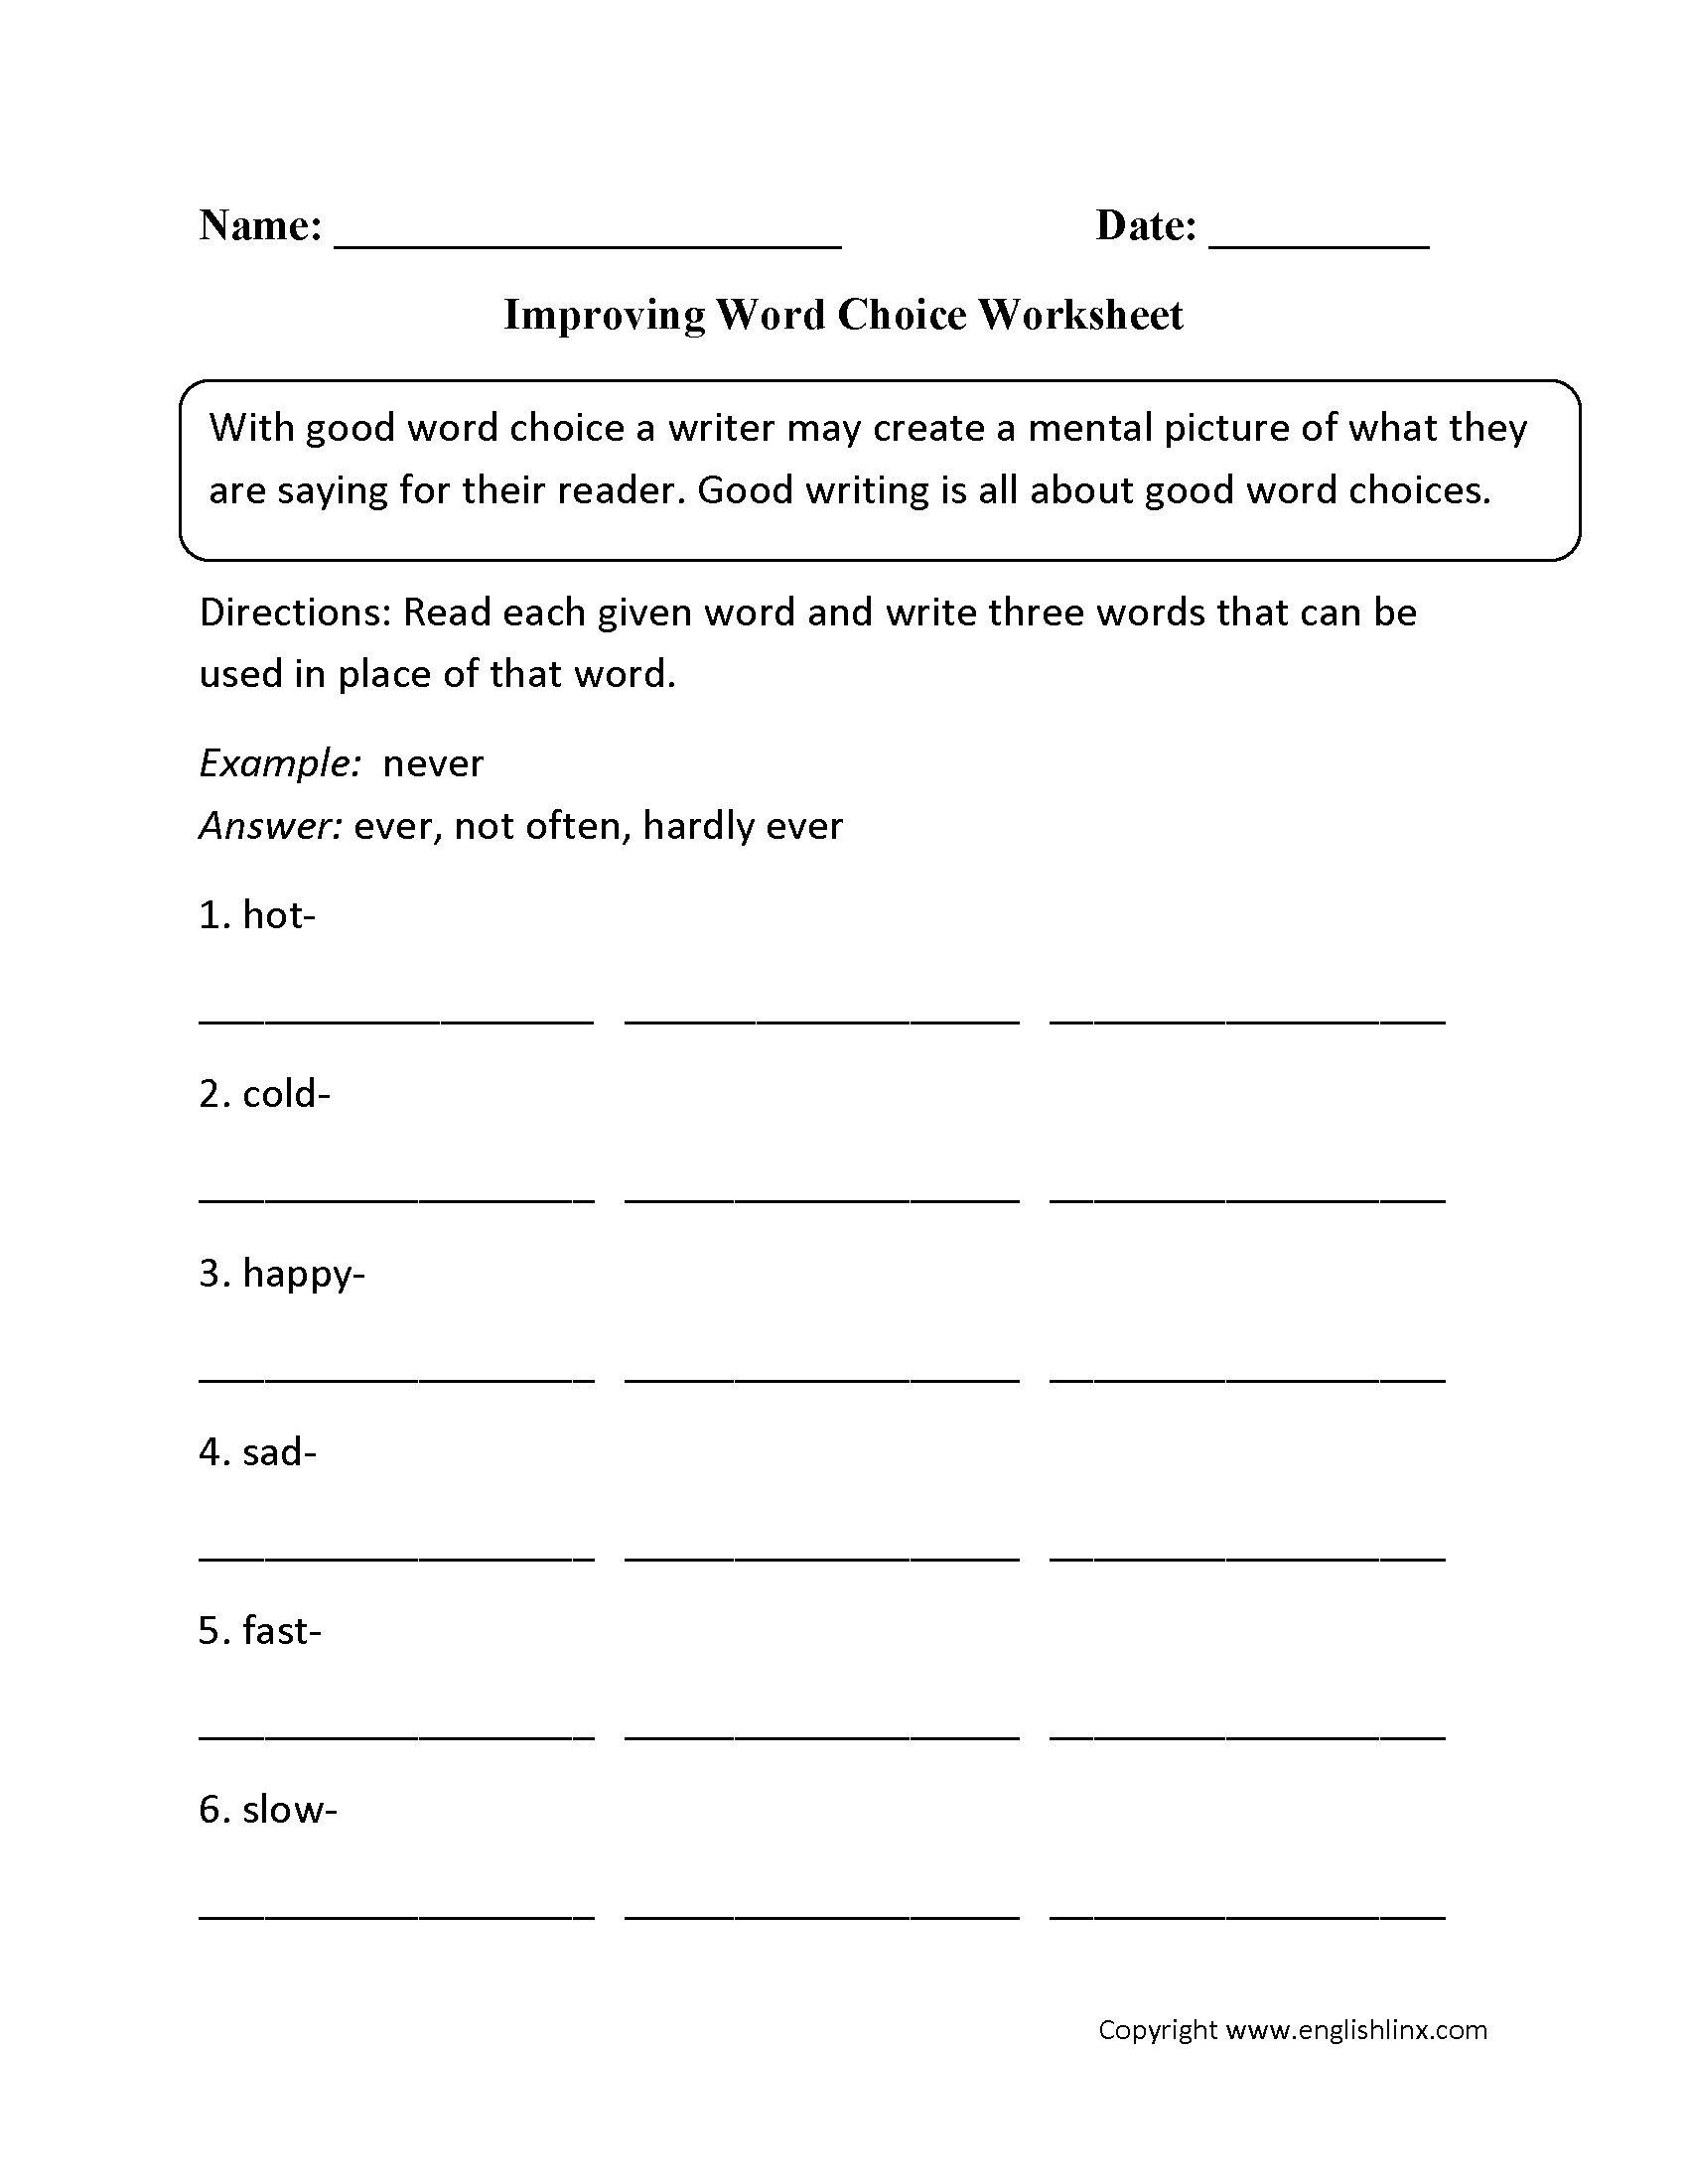 Improving Word Choice Worksheet